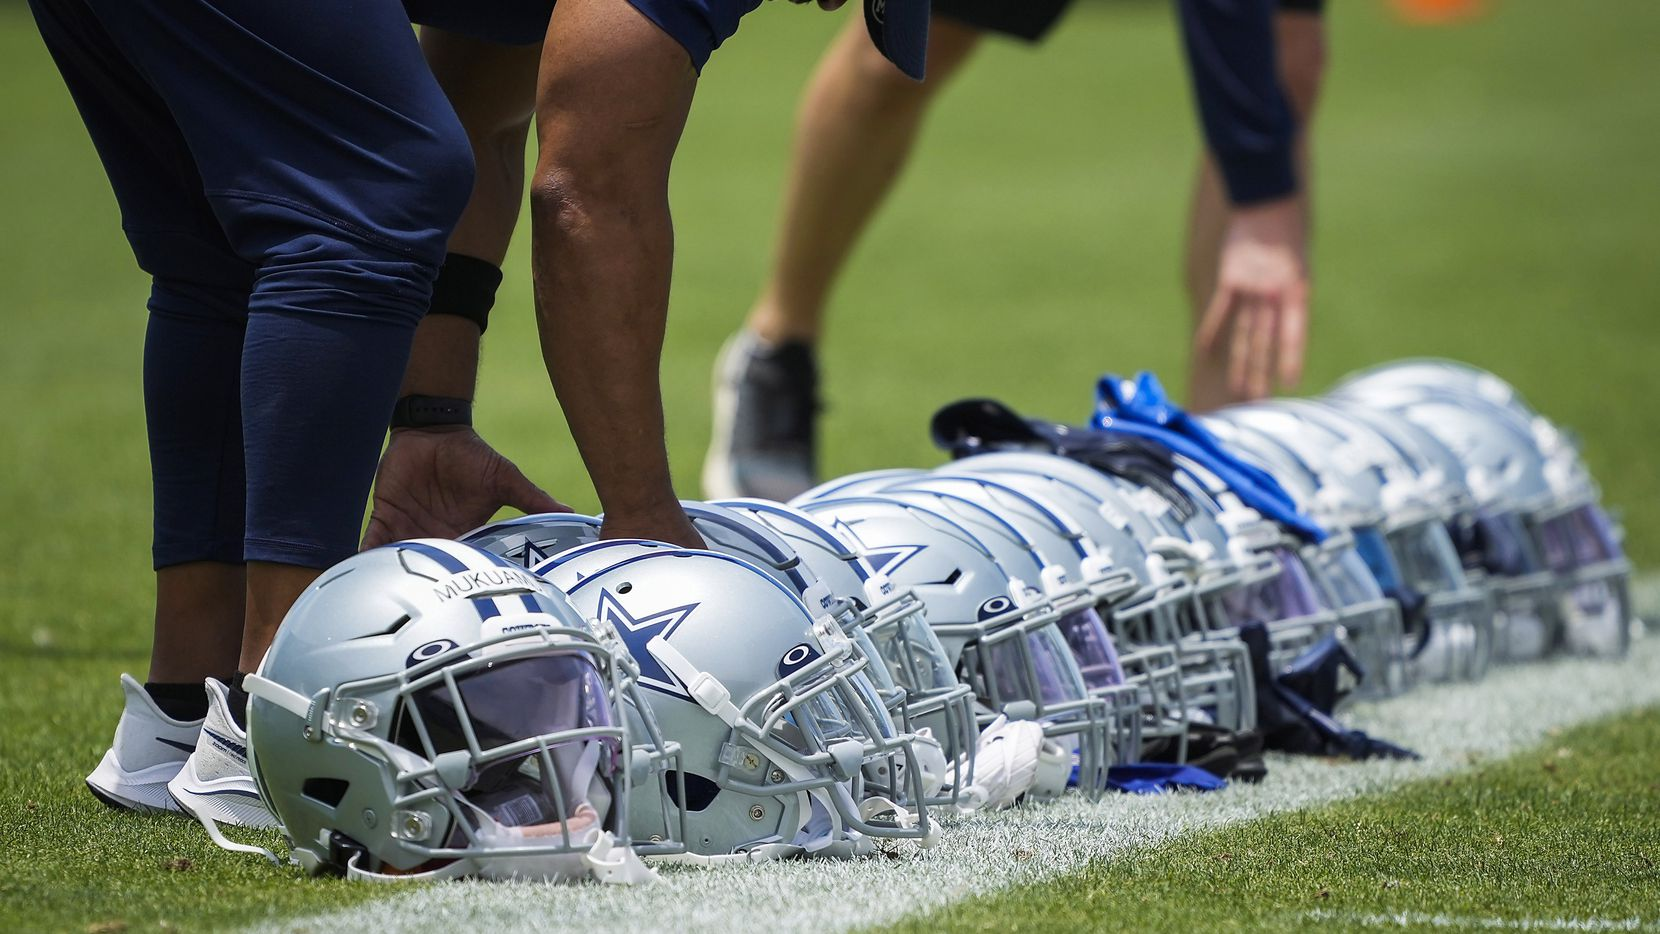 Dallas Cowboys staff line up defensive players helmets on the sideline during a minicamp practice at The Star on Tuesday, June 8, 2021, in Frisco.